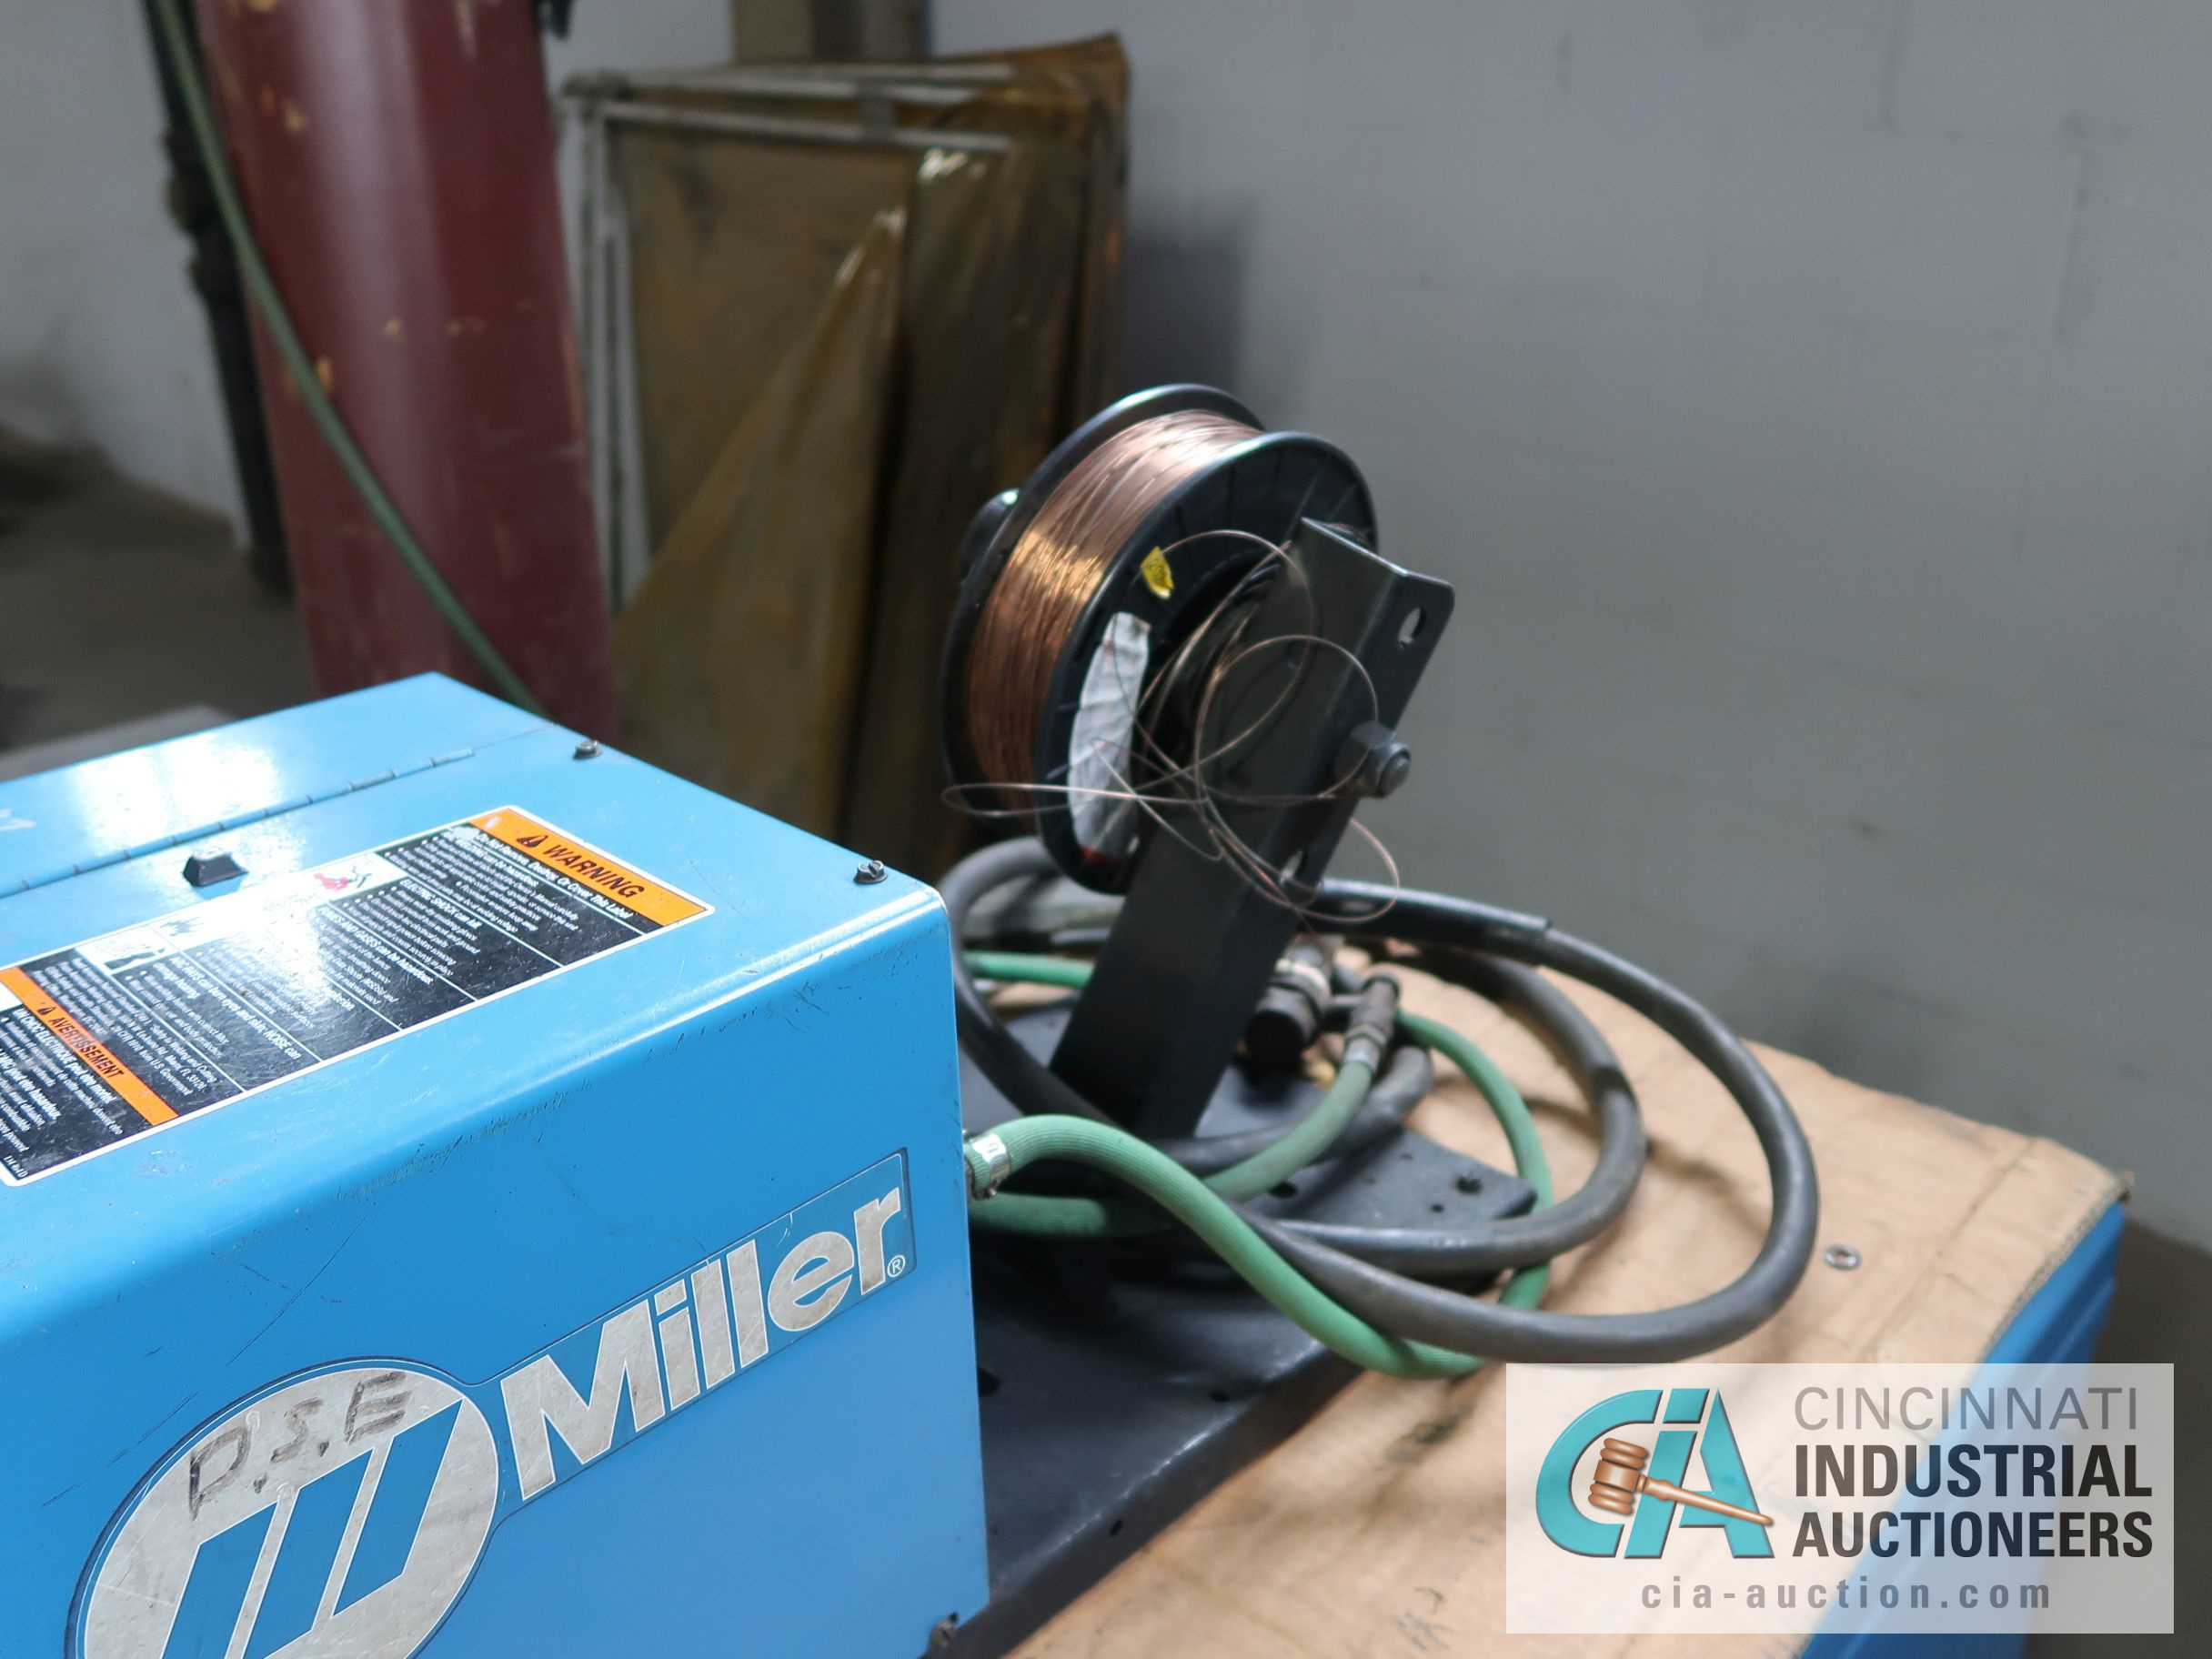 450 AMP MILLER DELTAWELD 452 MIG WELDER WITH MILLER 22A WIRE FEED; S/N LB106141 - Image 3 of 4